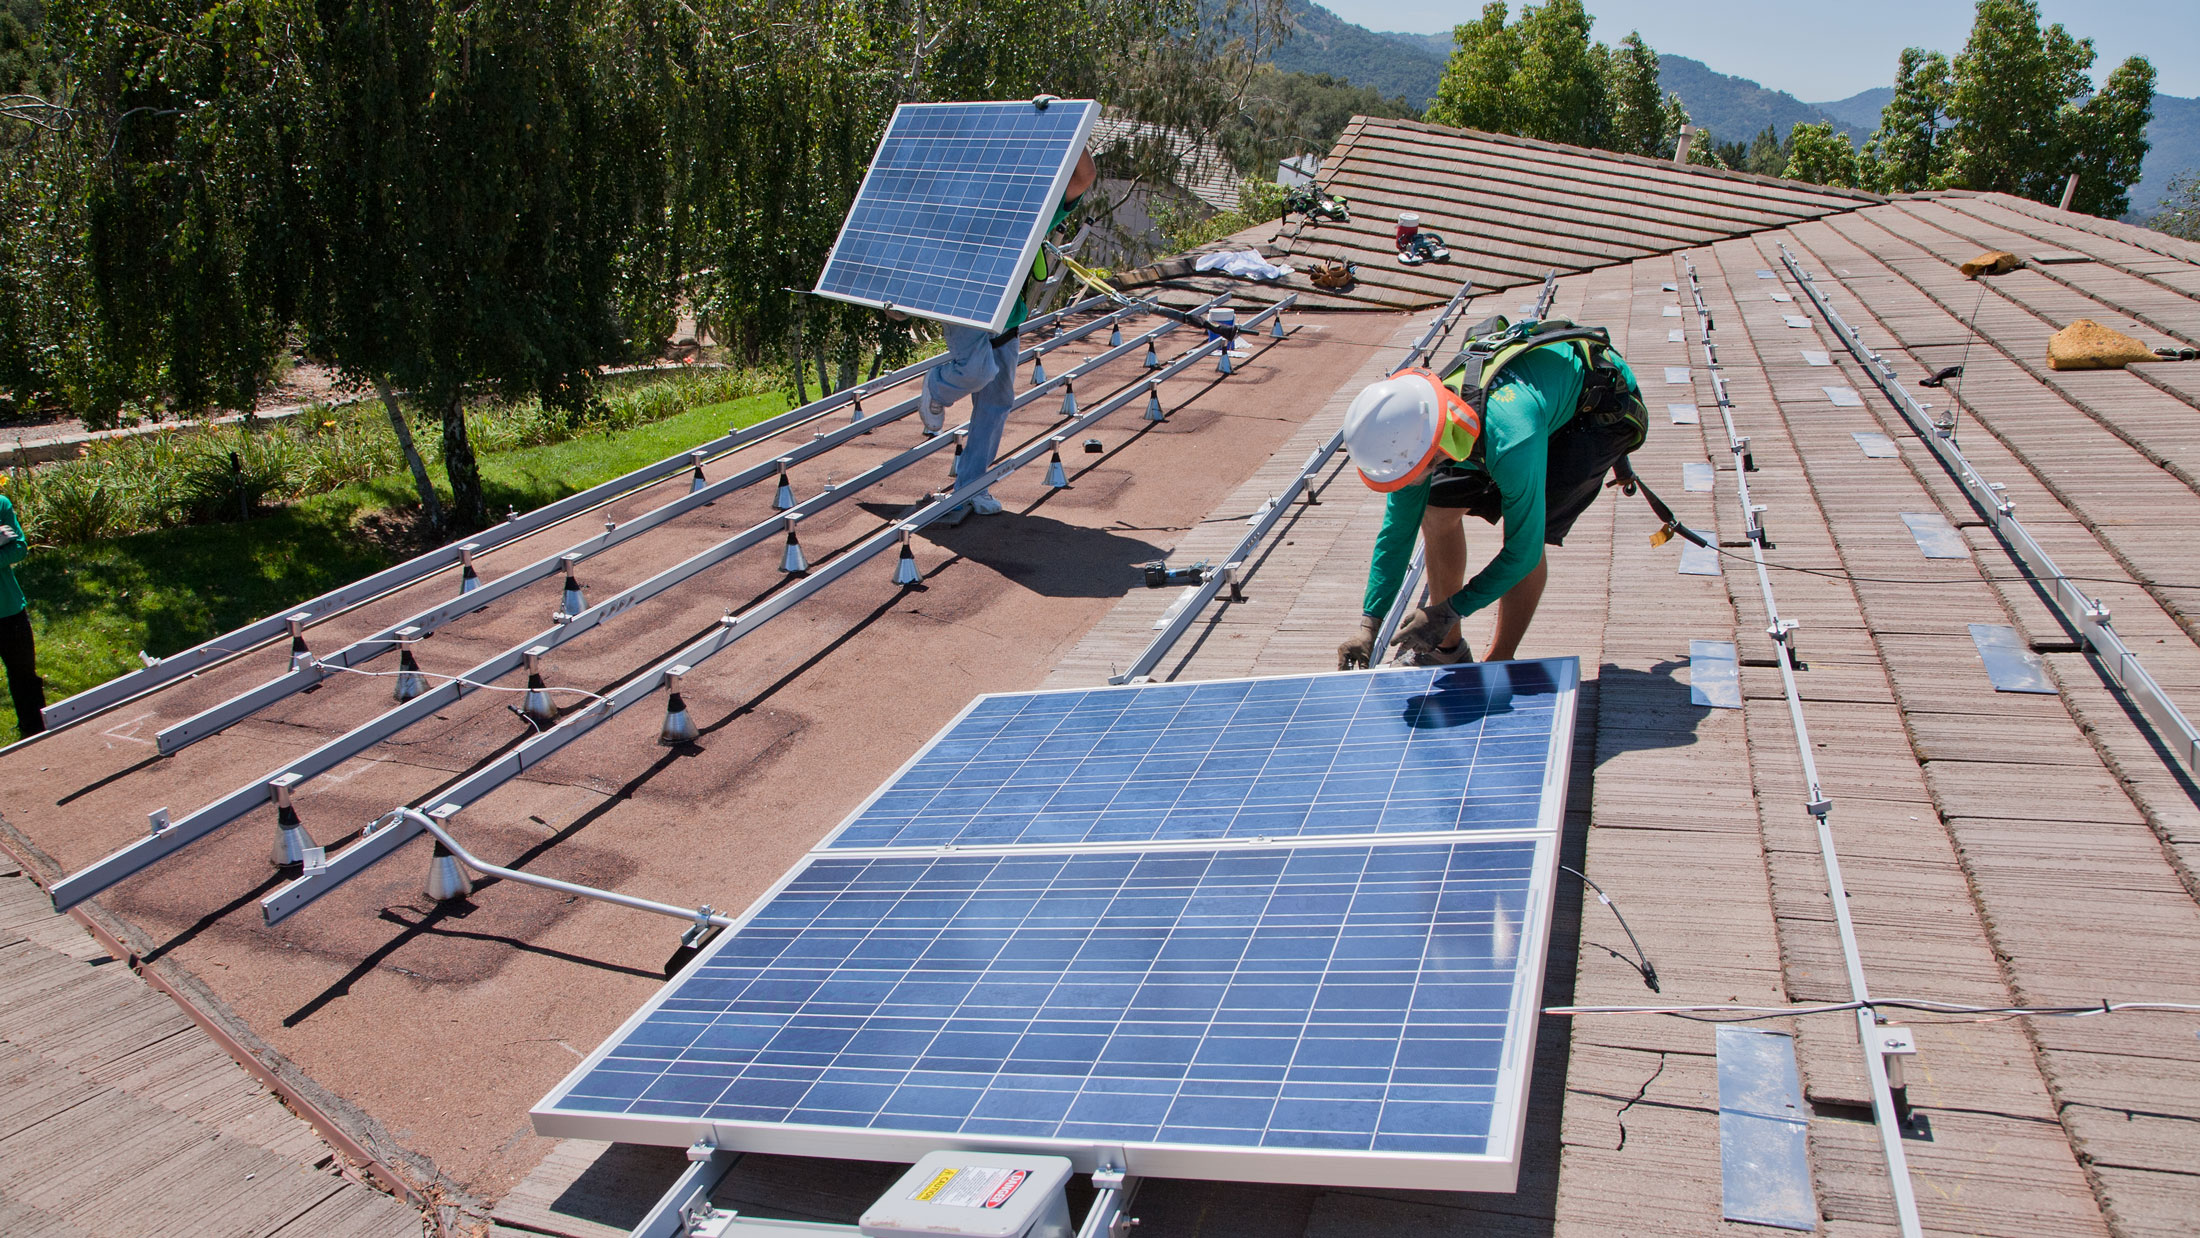 solar panels going up on a roof